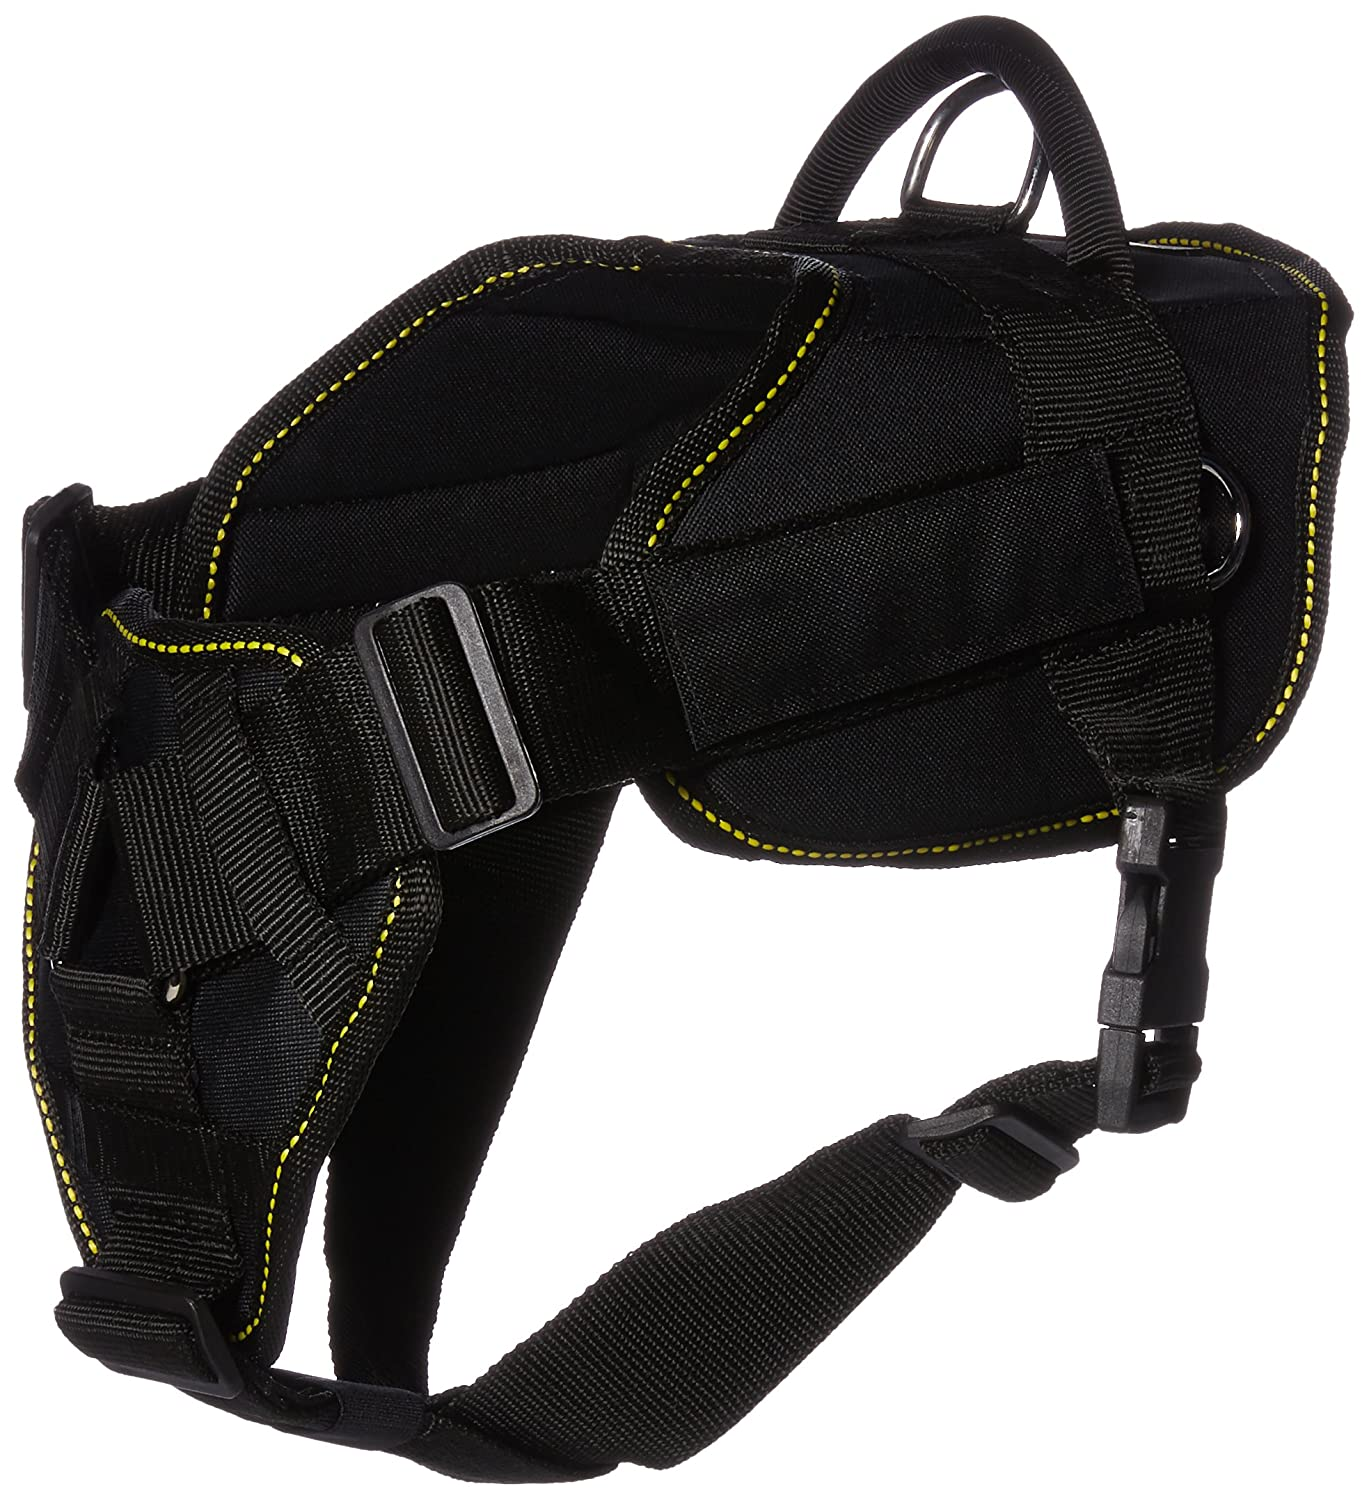 Dean & Tyler's DT Fun Chest Support Harness, Medium, with 6 ft Padded Puppy Leash.